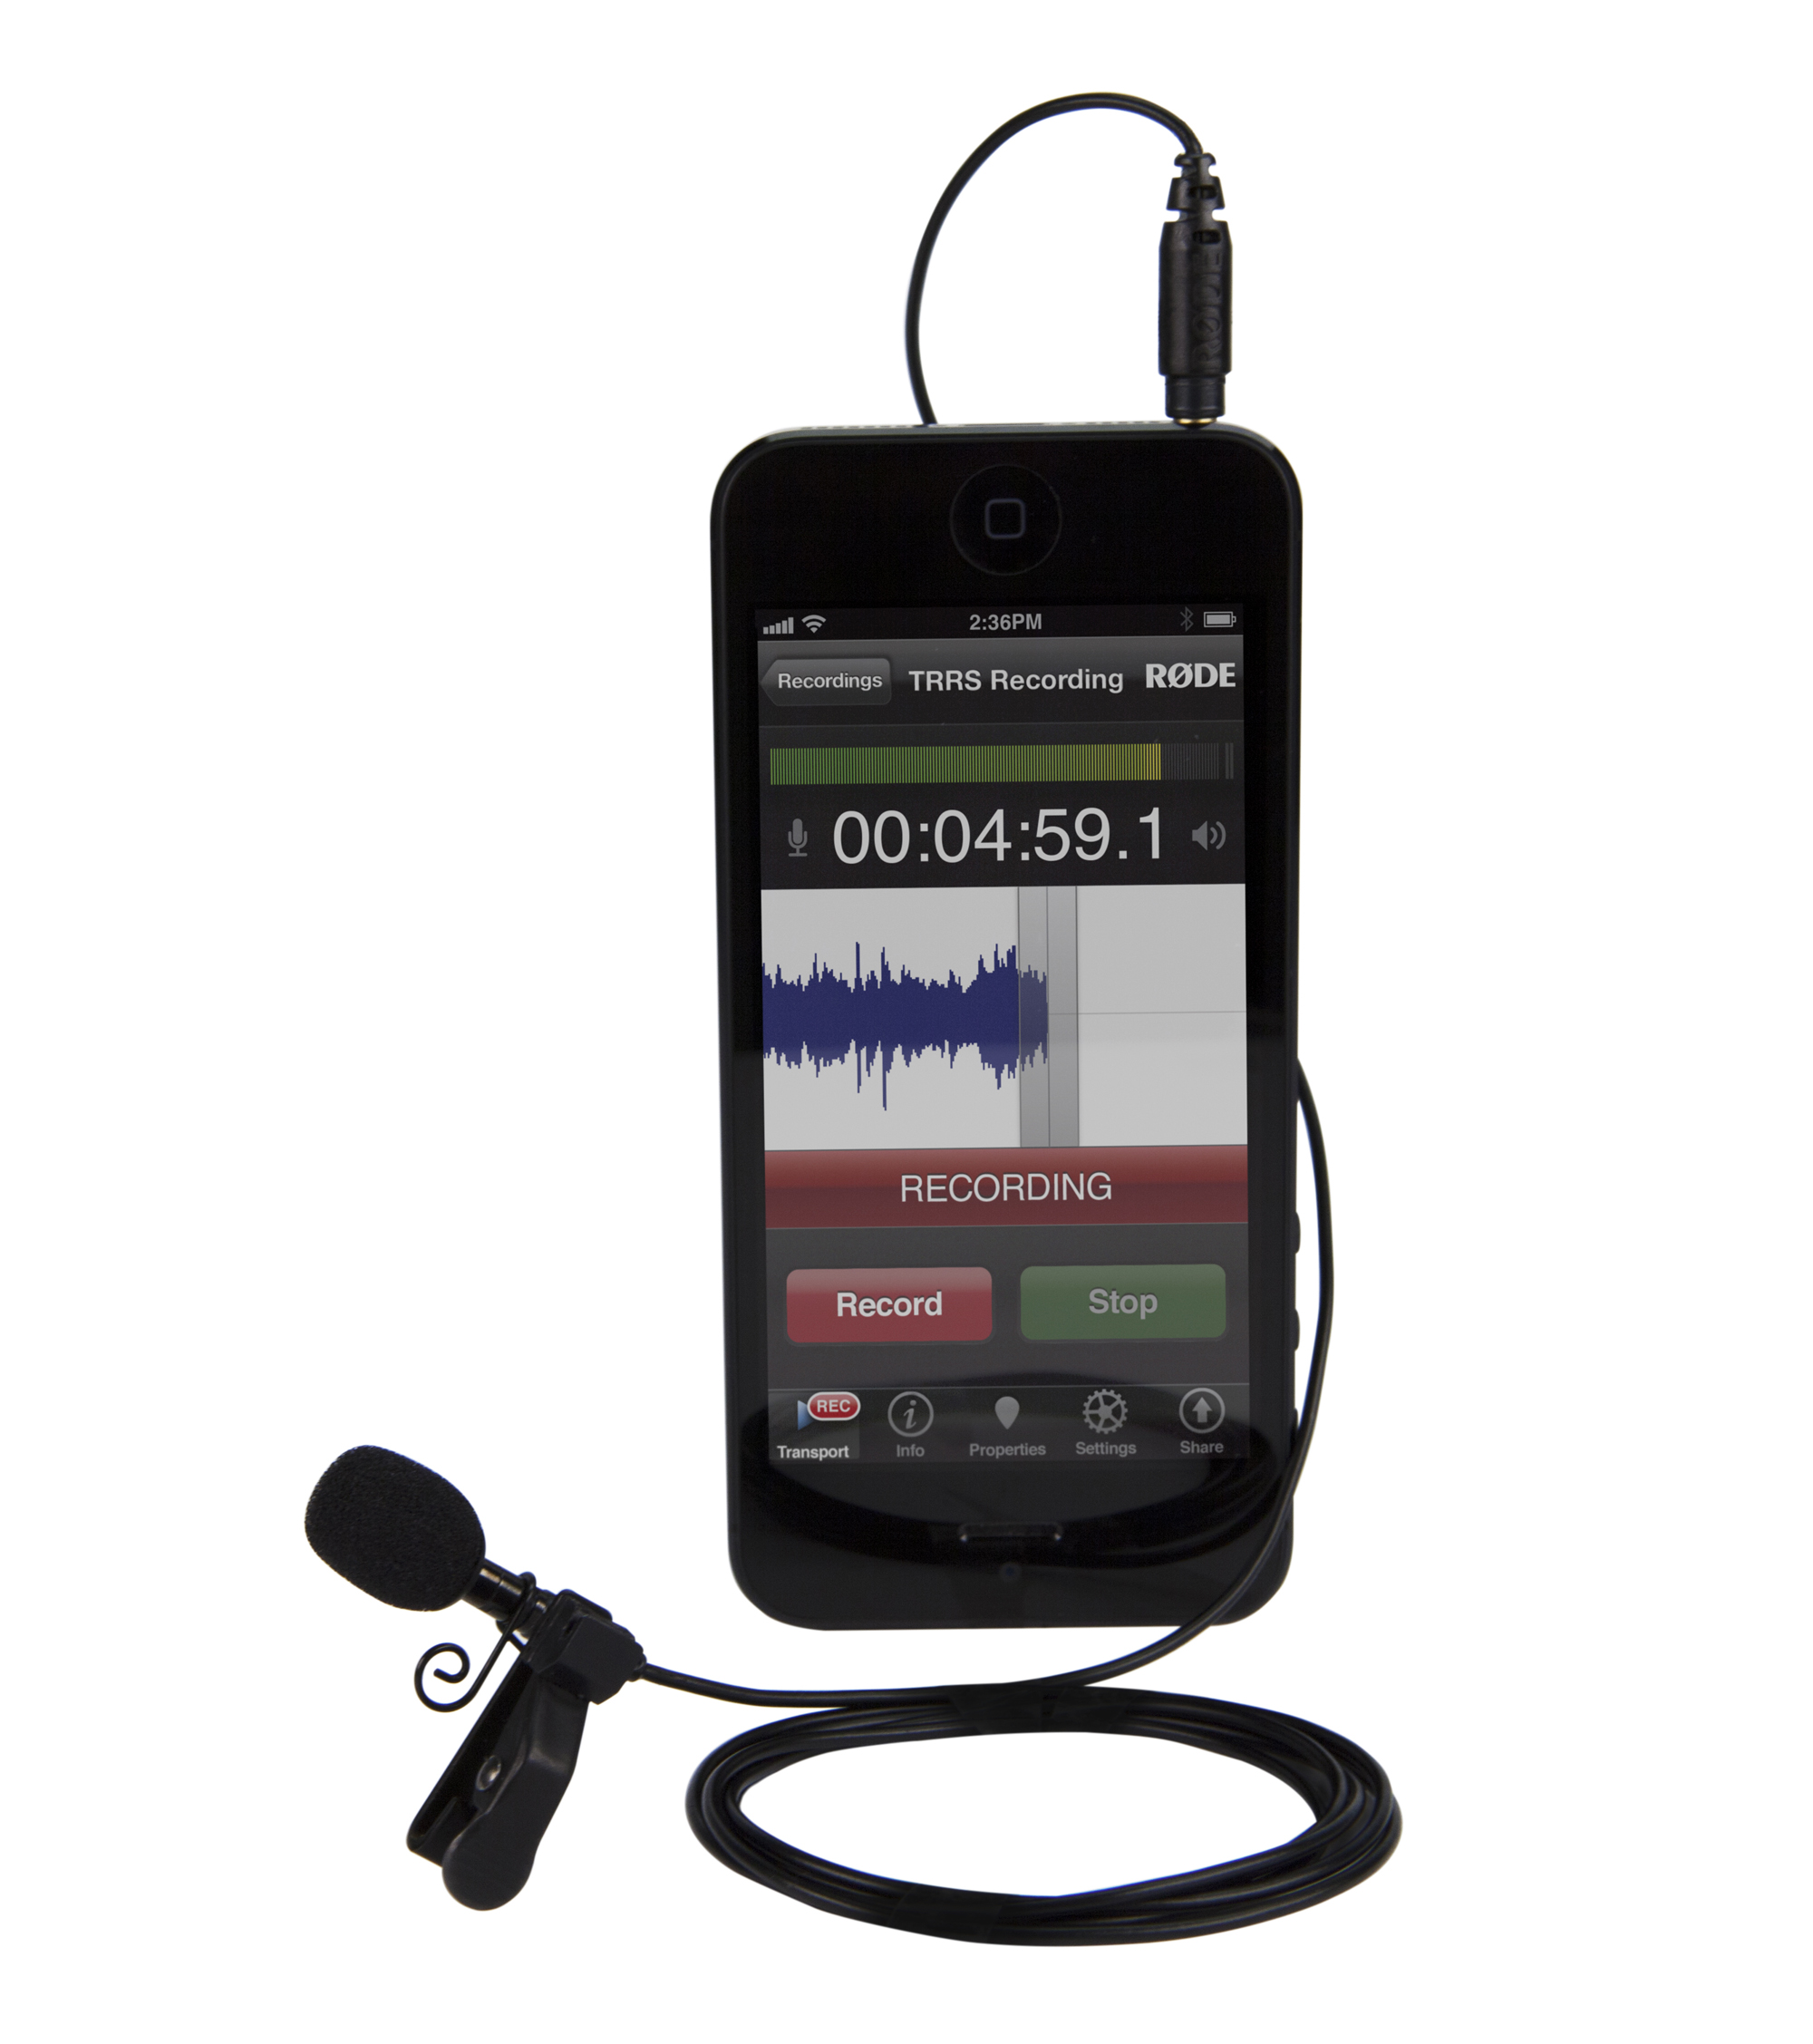 Rode launch $60 smartLav mic for iOS devices – a low cost solution interview audio solution?